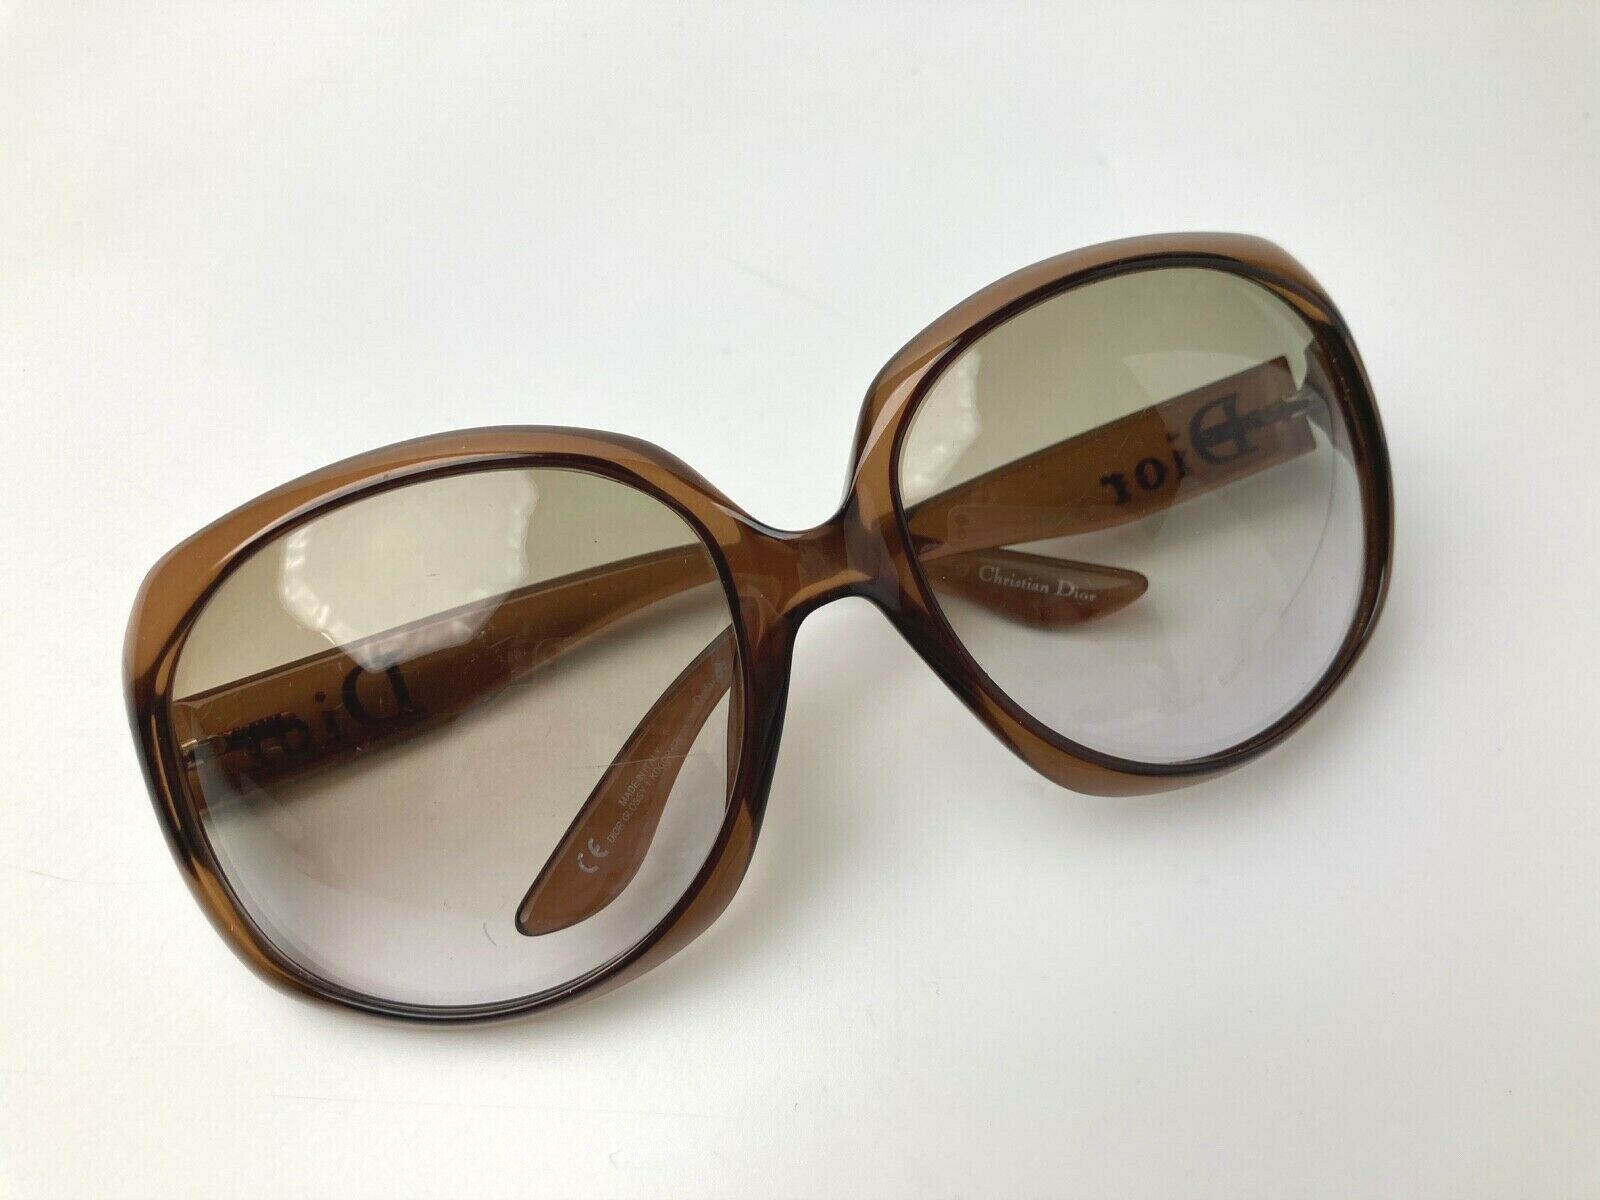 CHRISTIAN DIOR GLOSSY ICONIC SUNGLASSES OVERSIZED CLEAR LIGHT BROWN GRAY ITALY